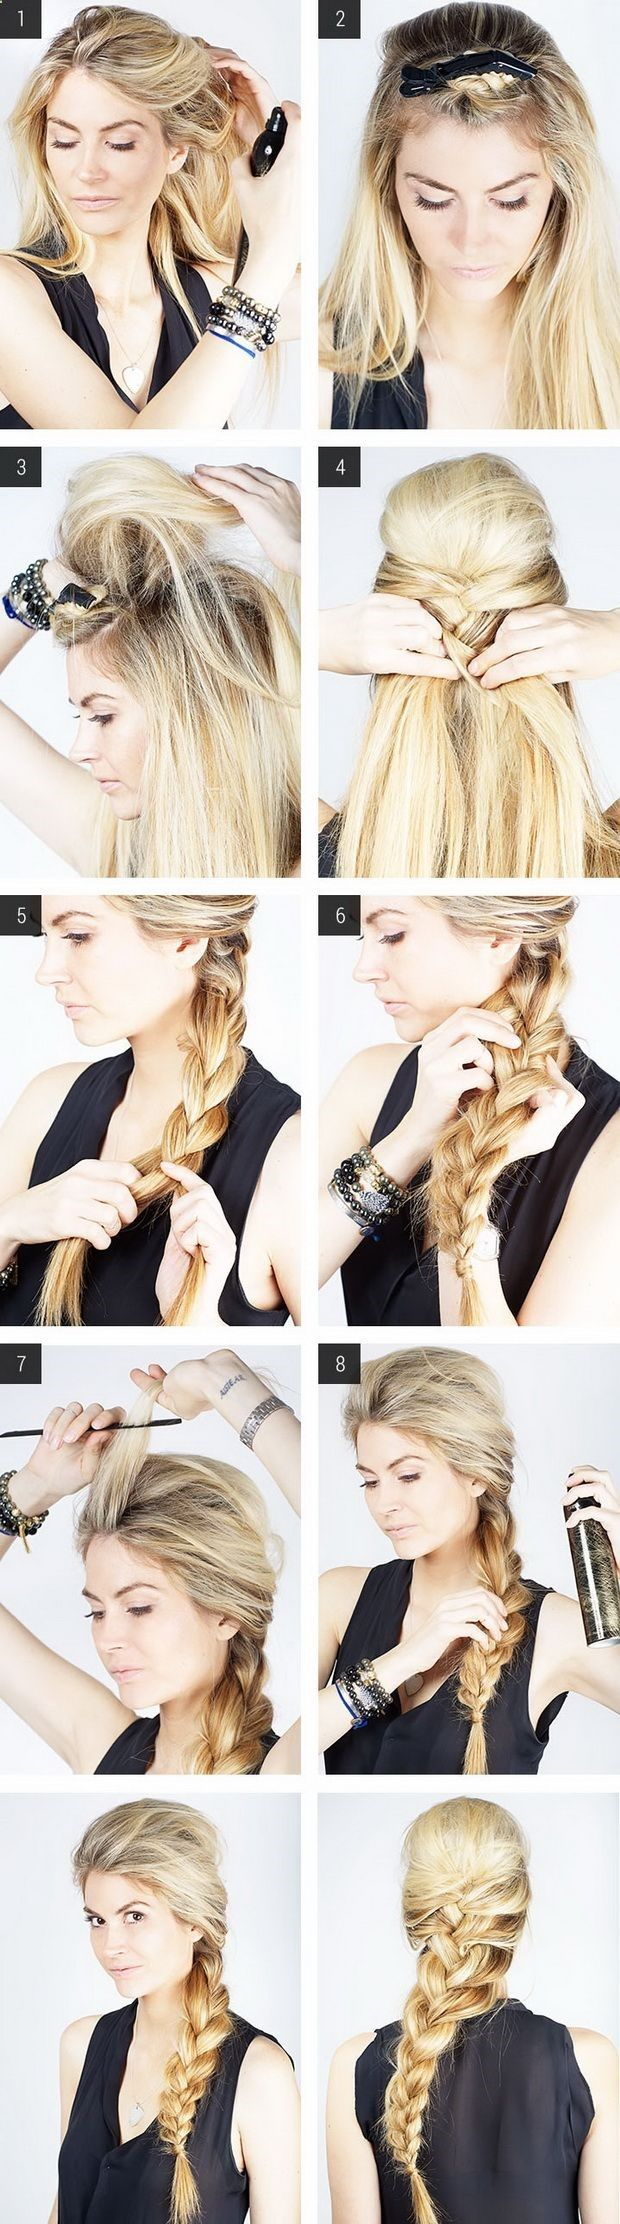 Messy French braid with poof